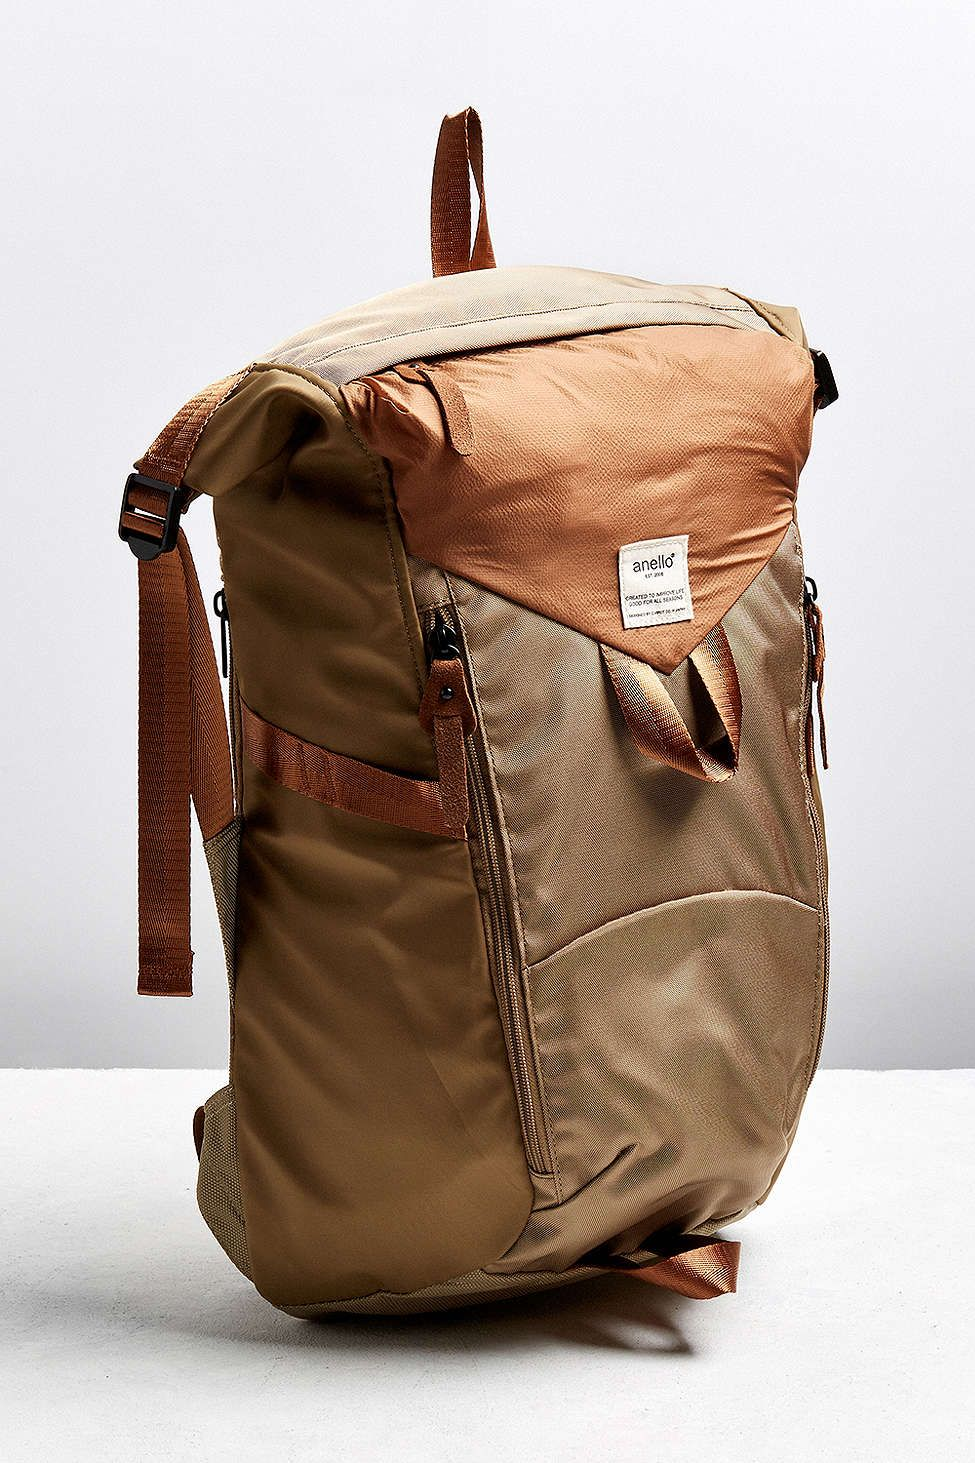 770624e8a8f3 Anello Nylon Strap Backpack - Urban Outfitters